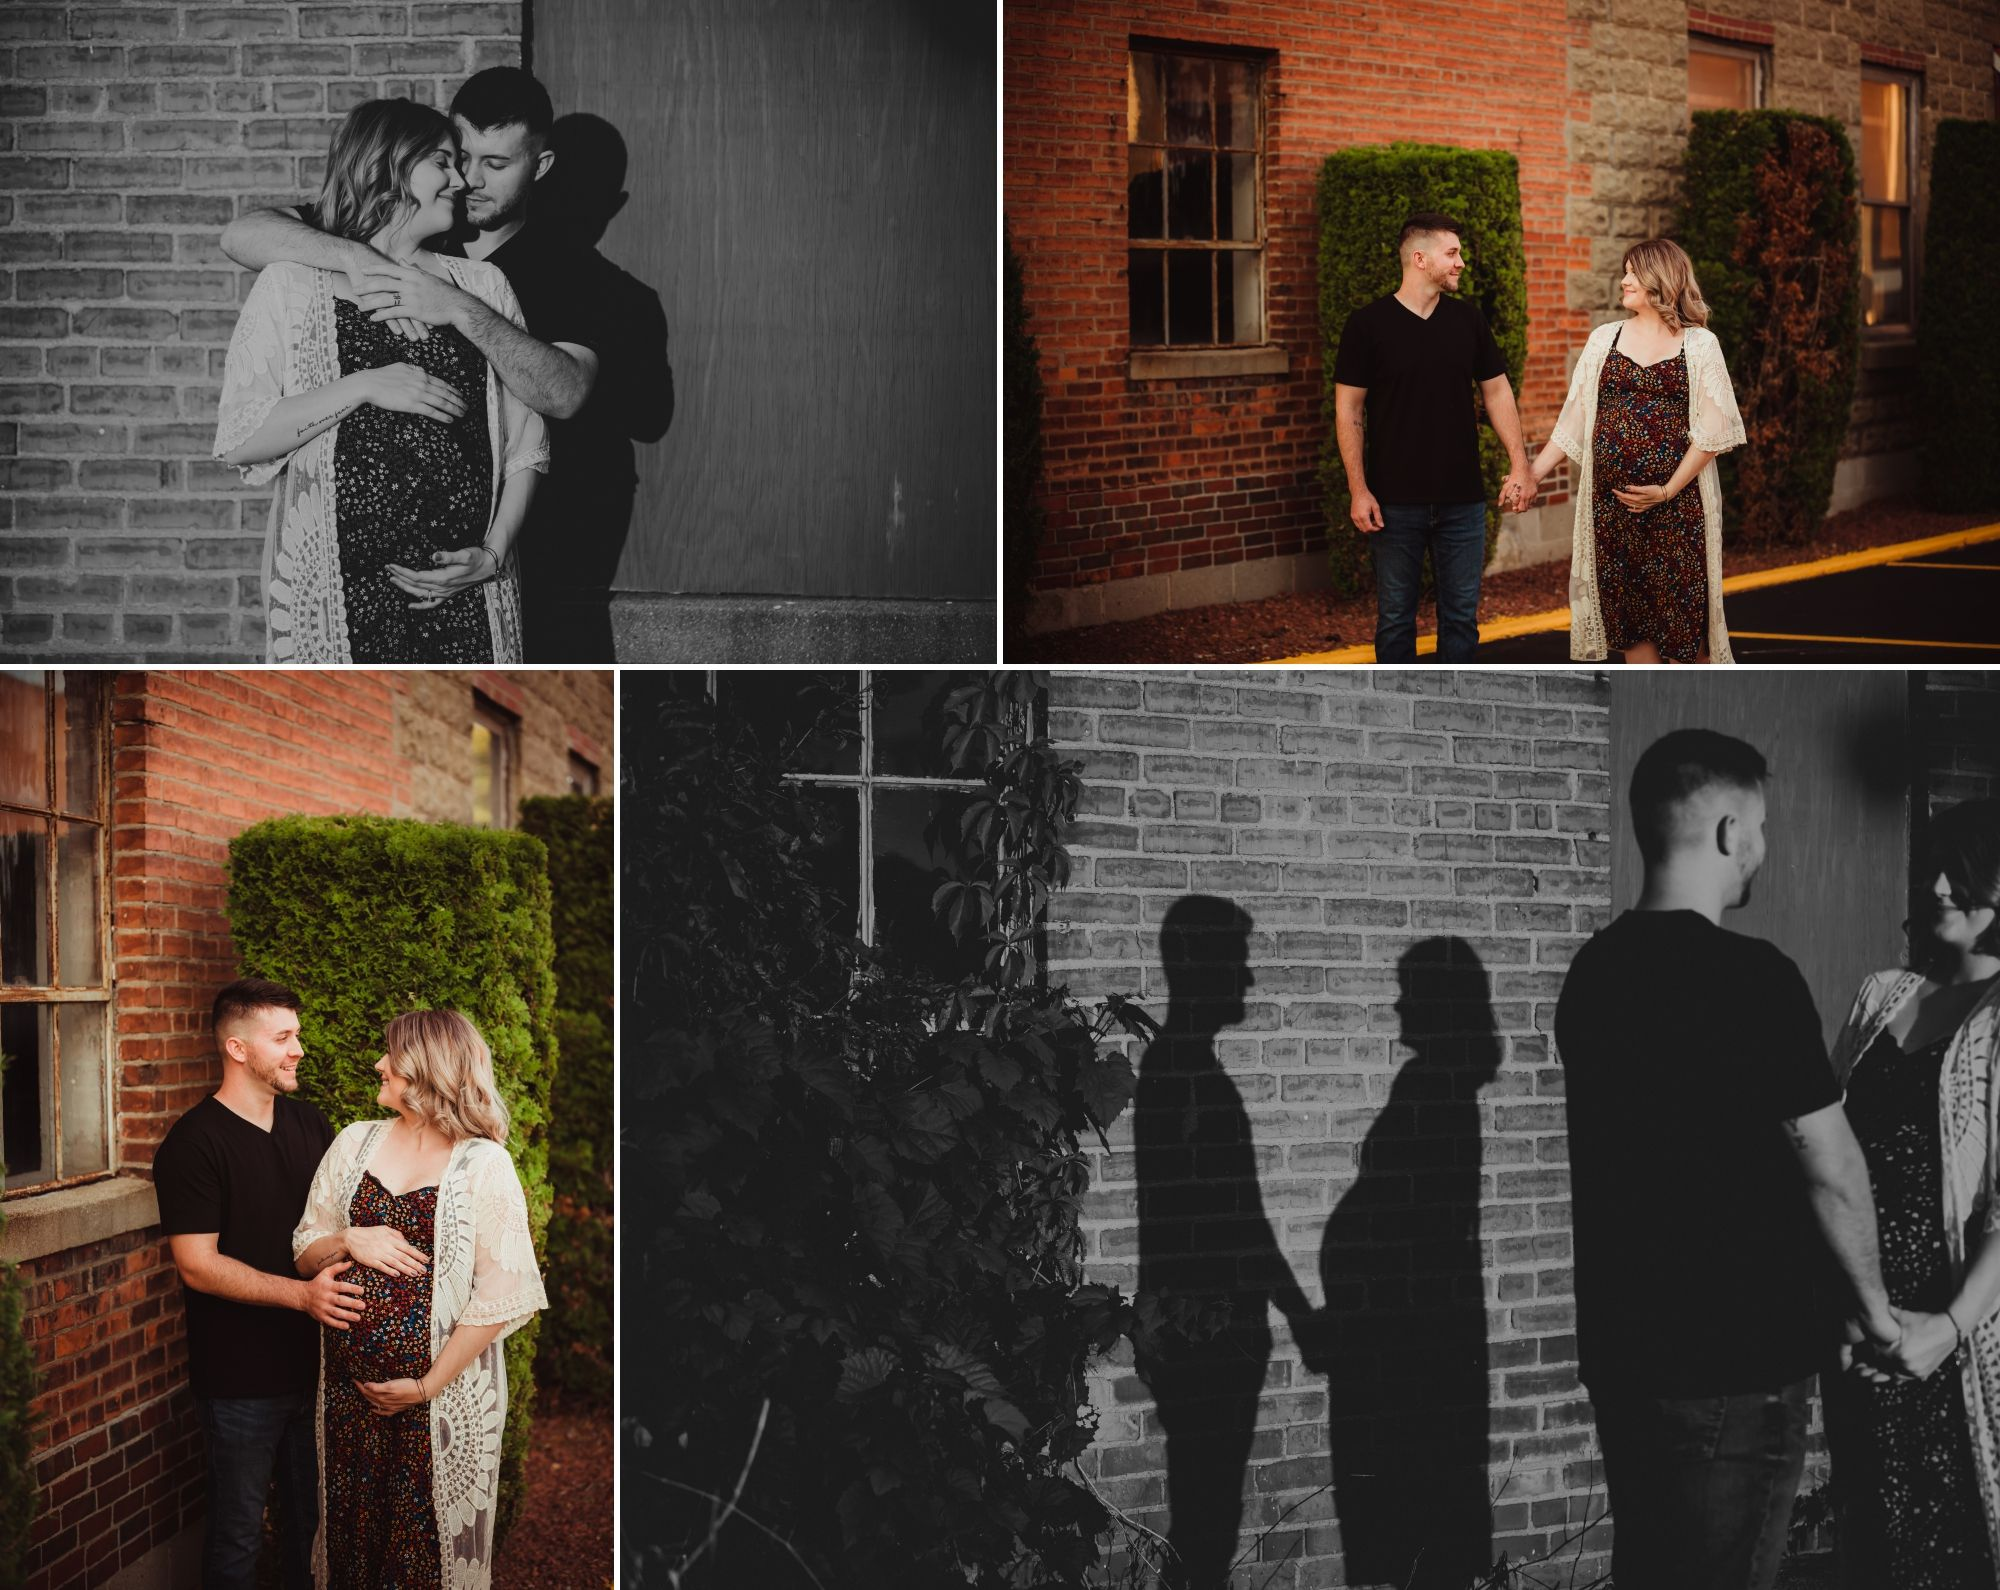 Photos of a man and a pregnant woman standing in front of brick walls downtown with their shadows behind them.